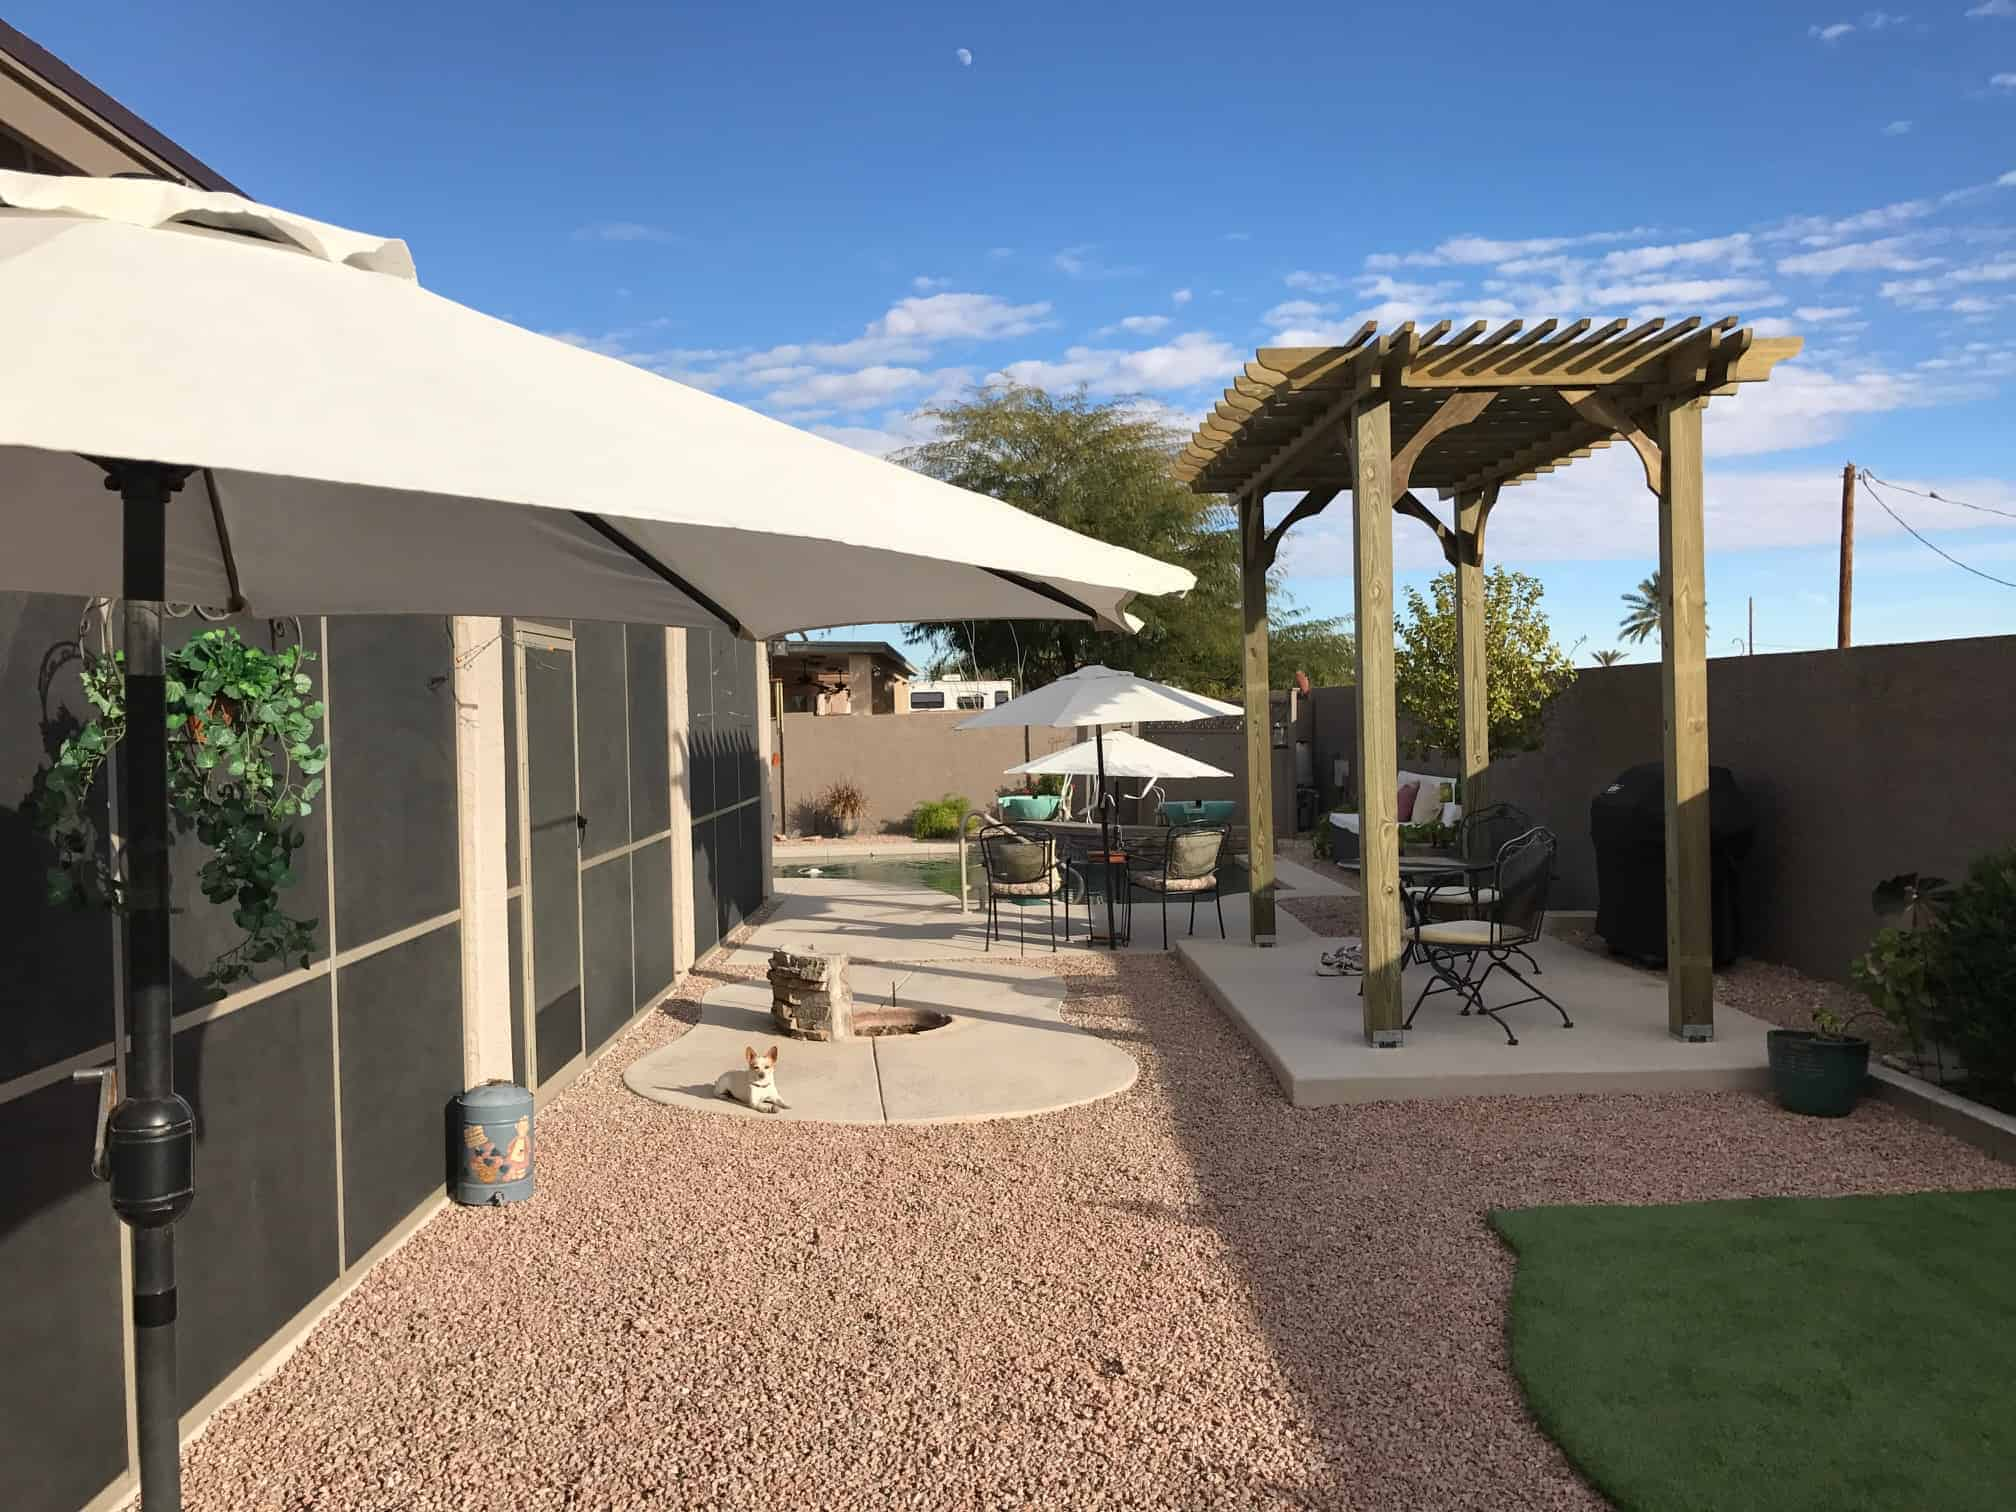 Arizona patio shade kit